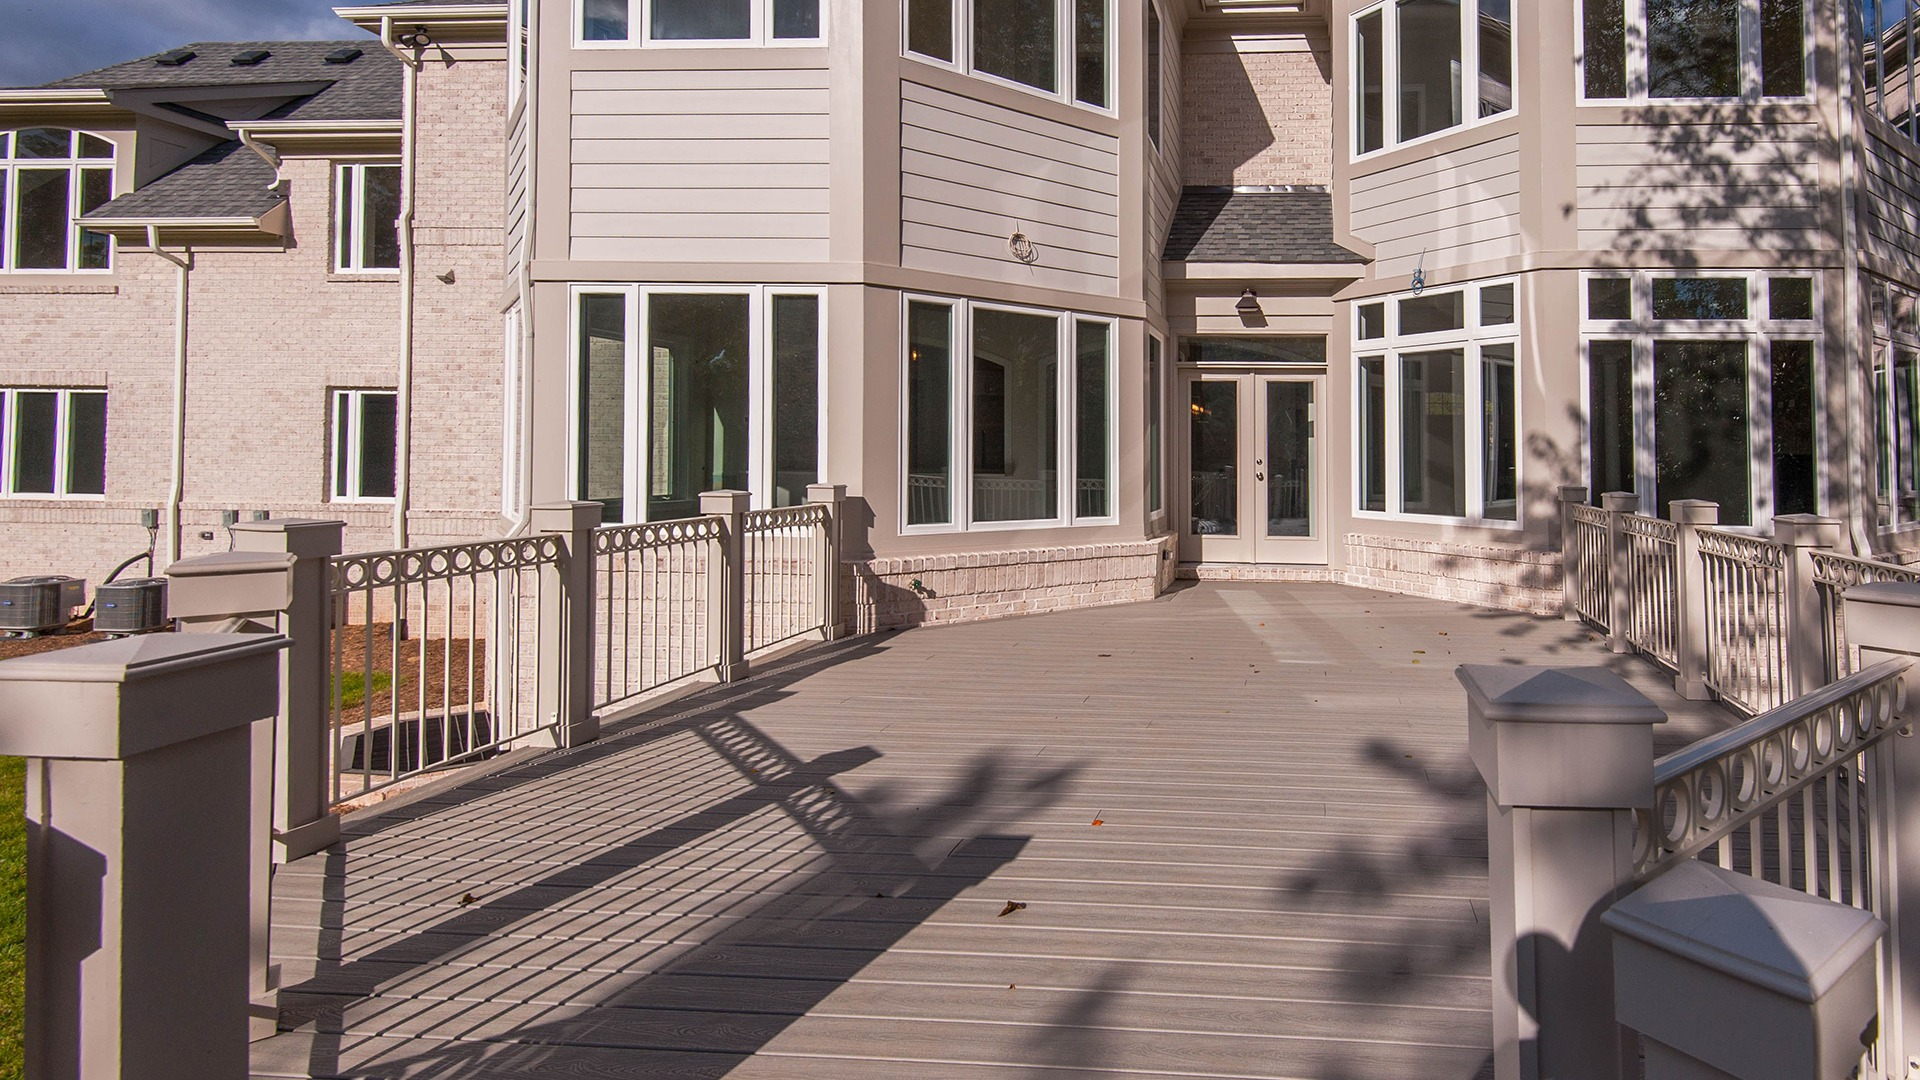 A custom designed composite deck with a beautiful view of the rear year.